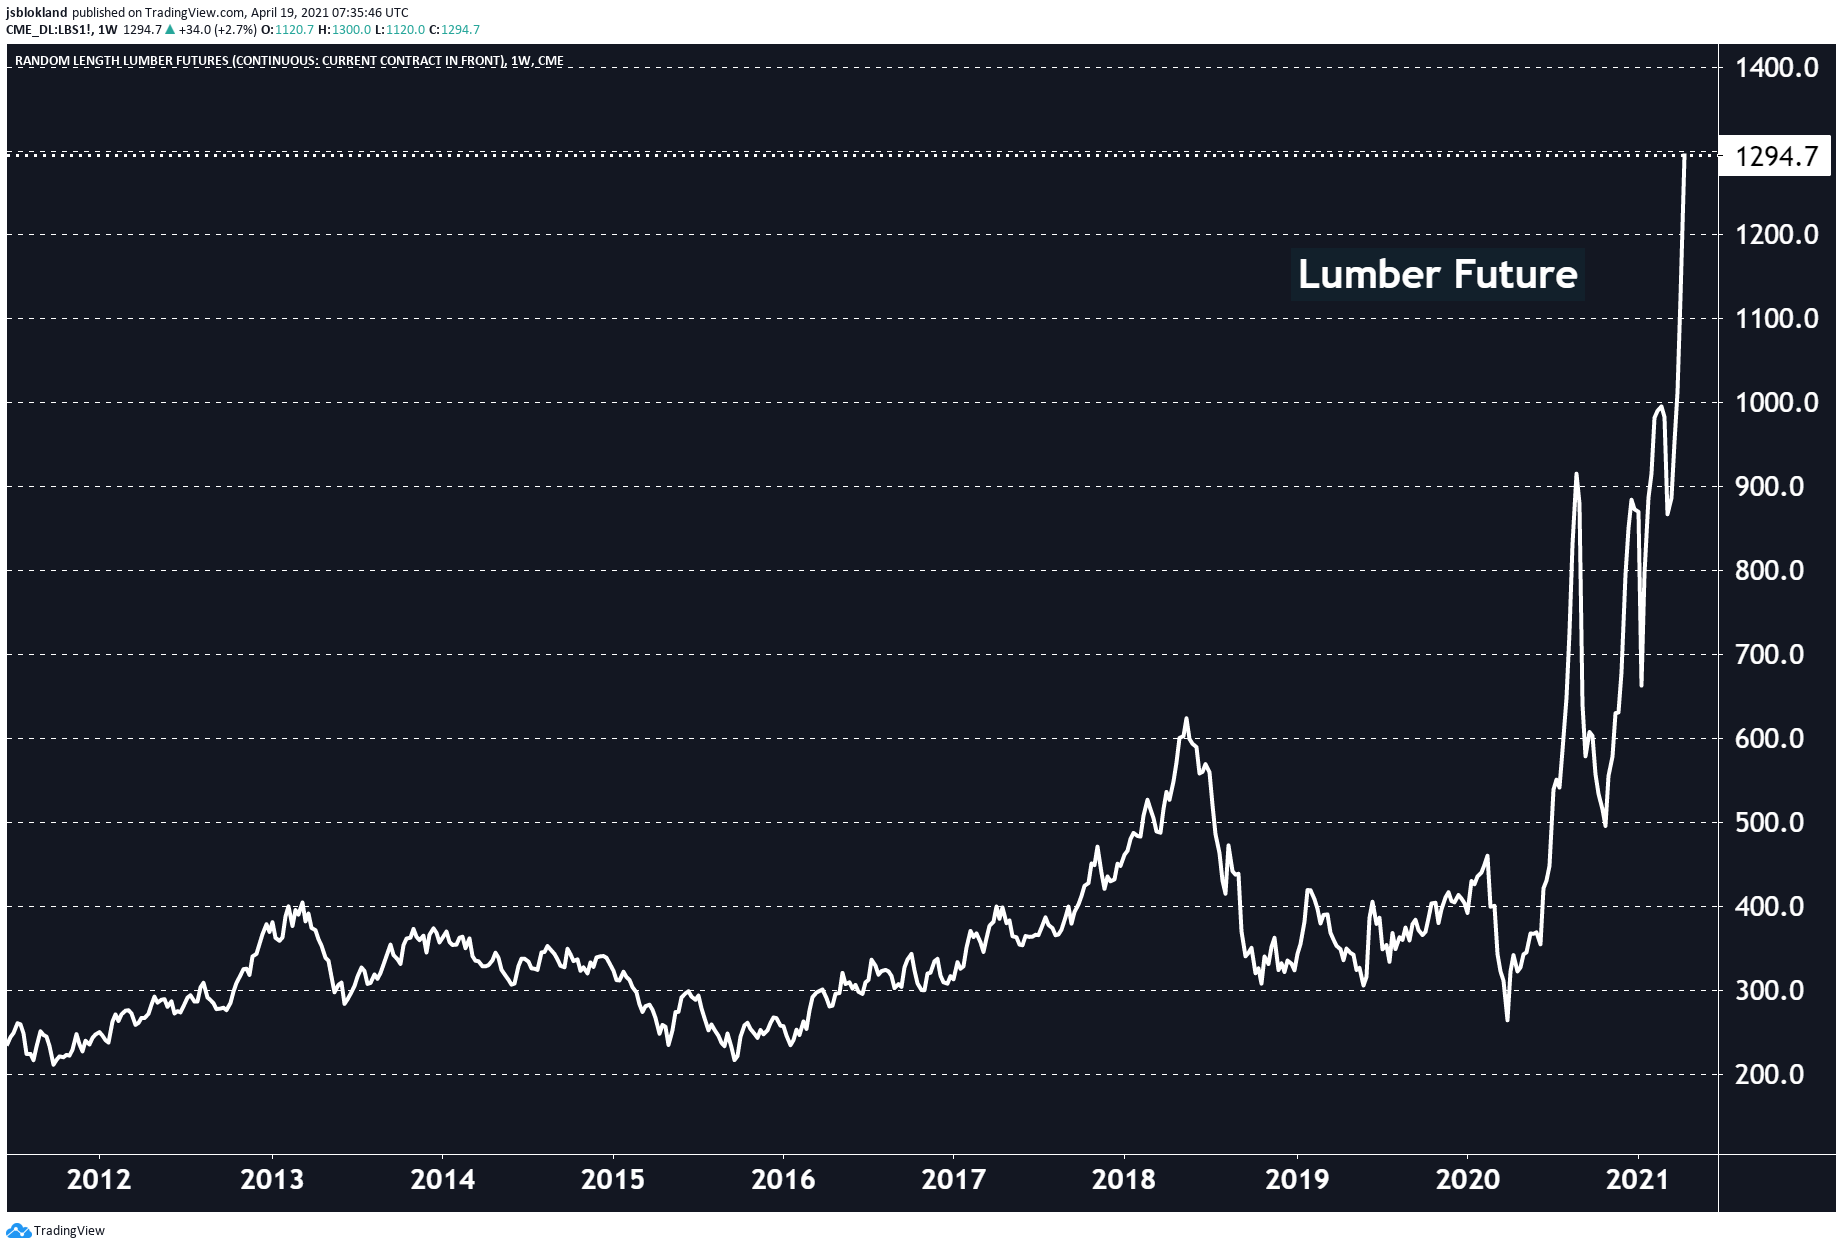 Lumber prices hit yet again a new all-time high